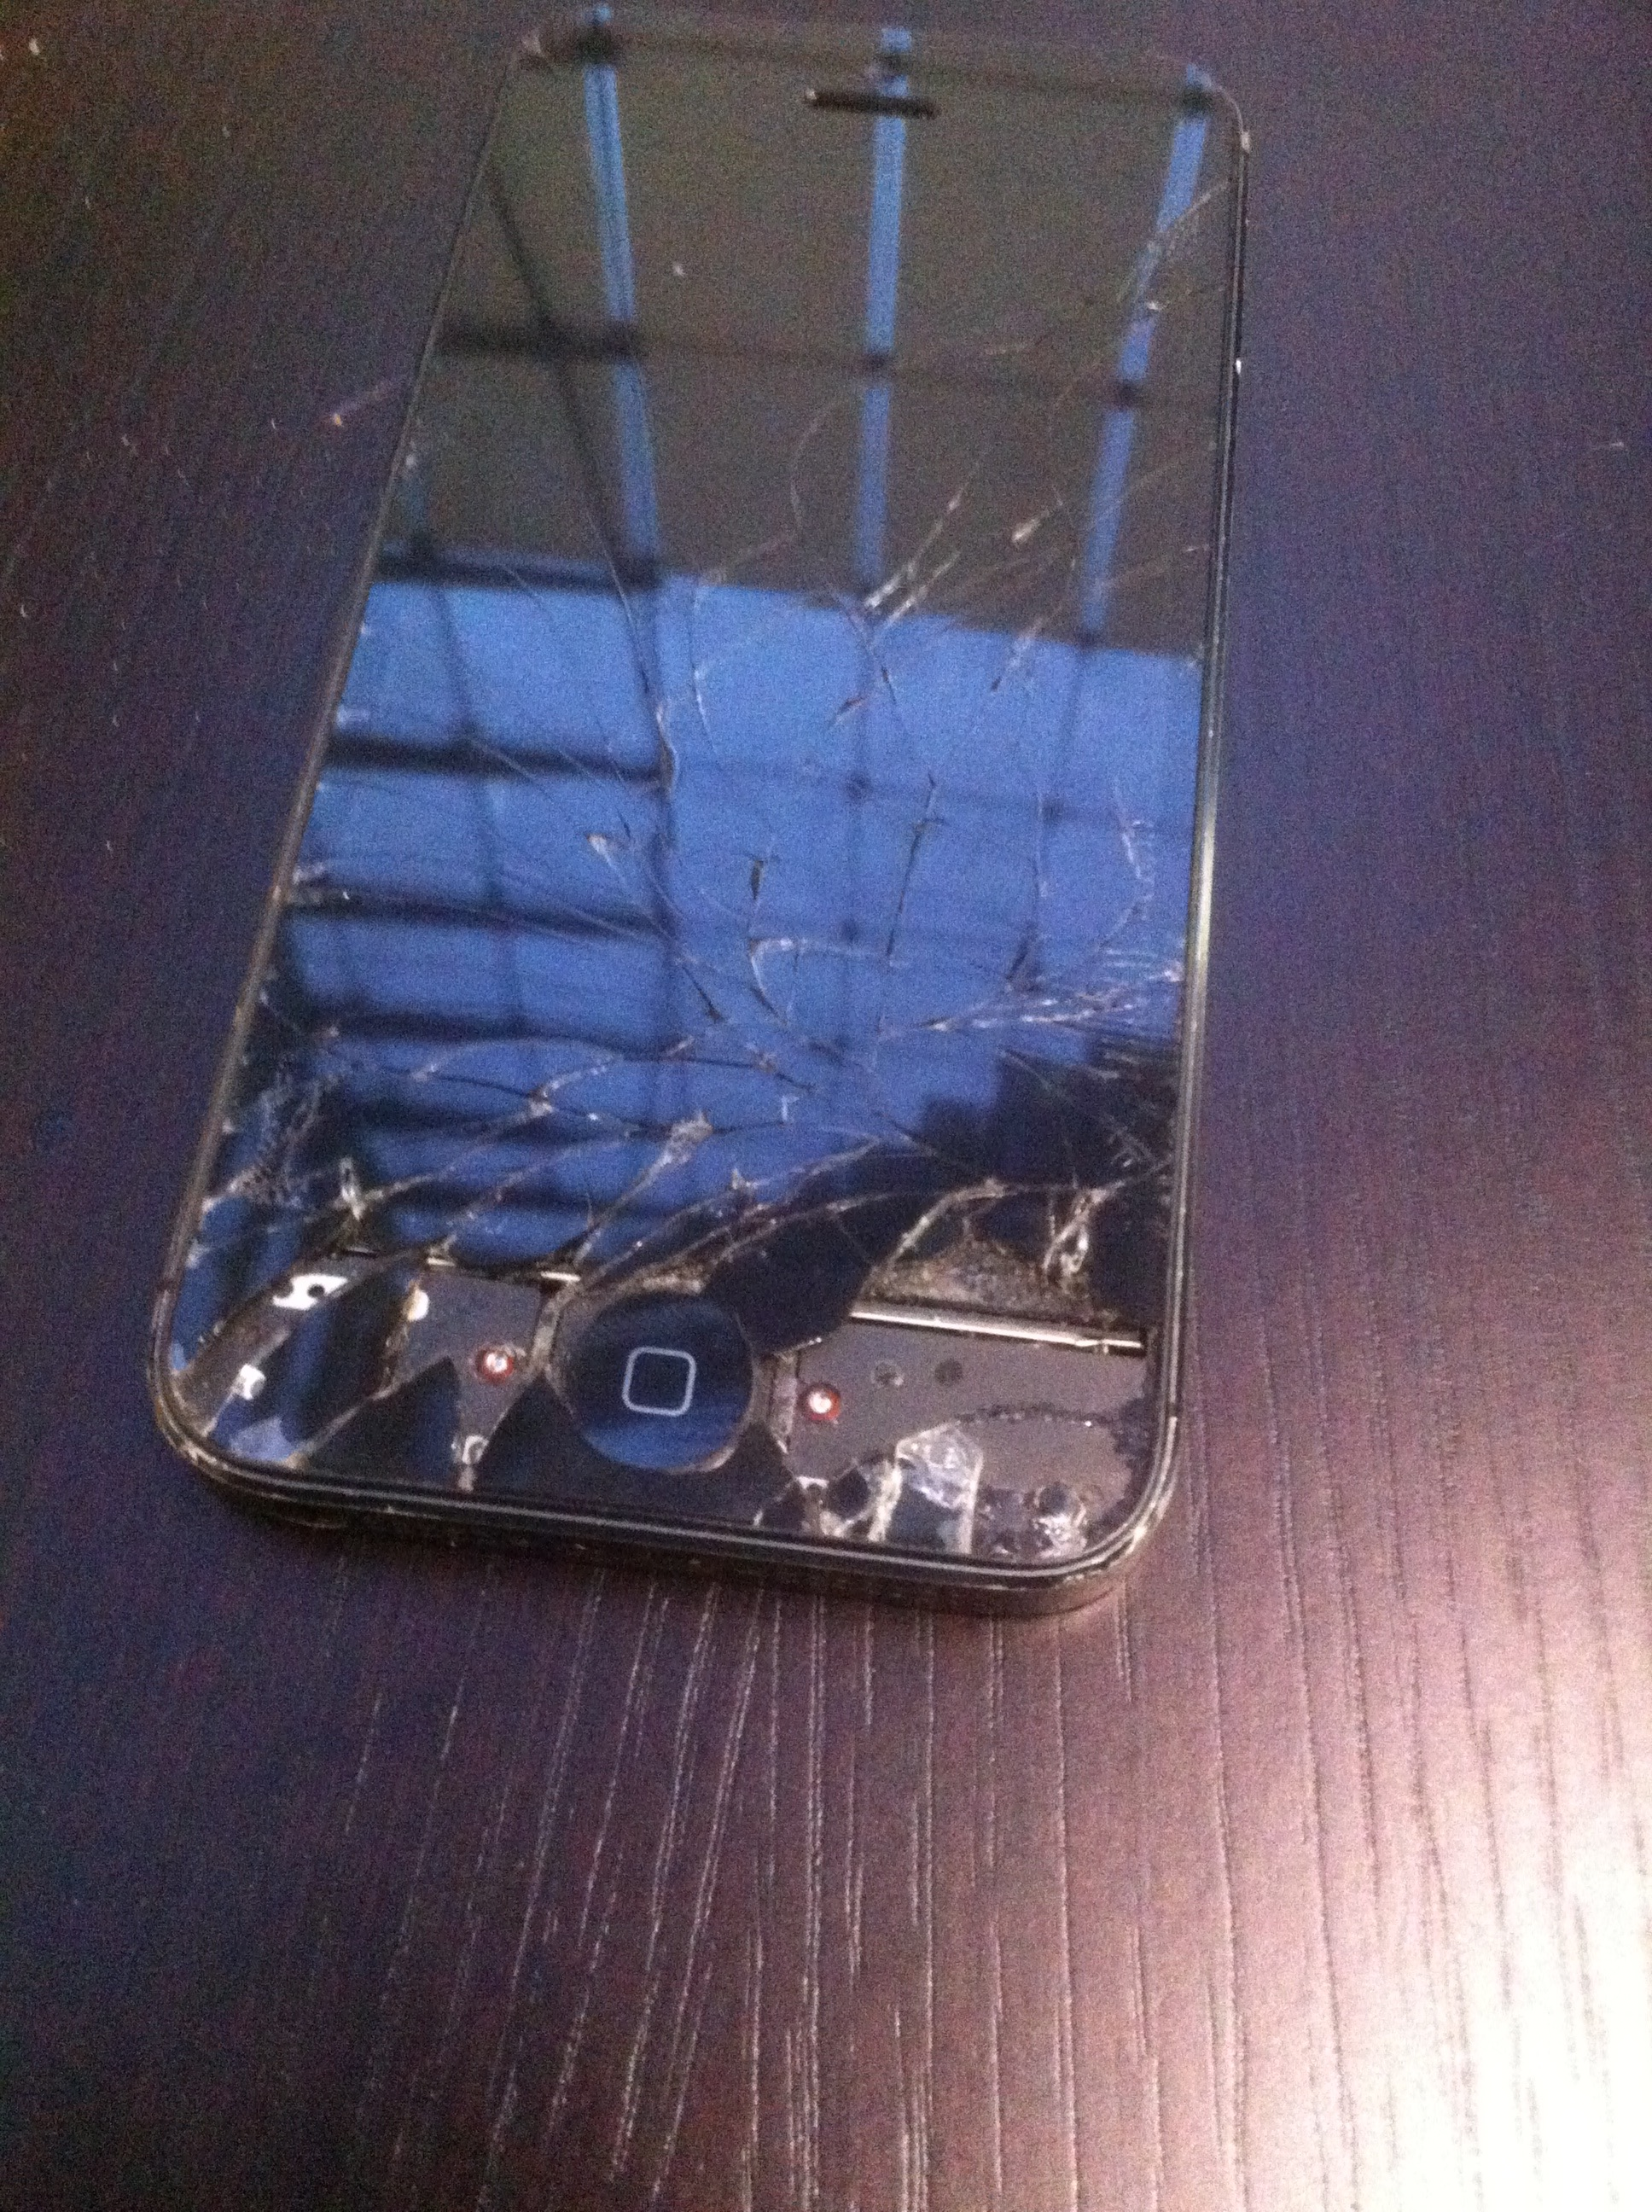 My Daughter broke my iphone 4s